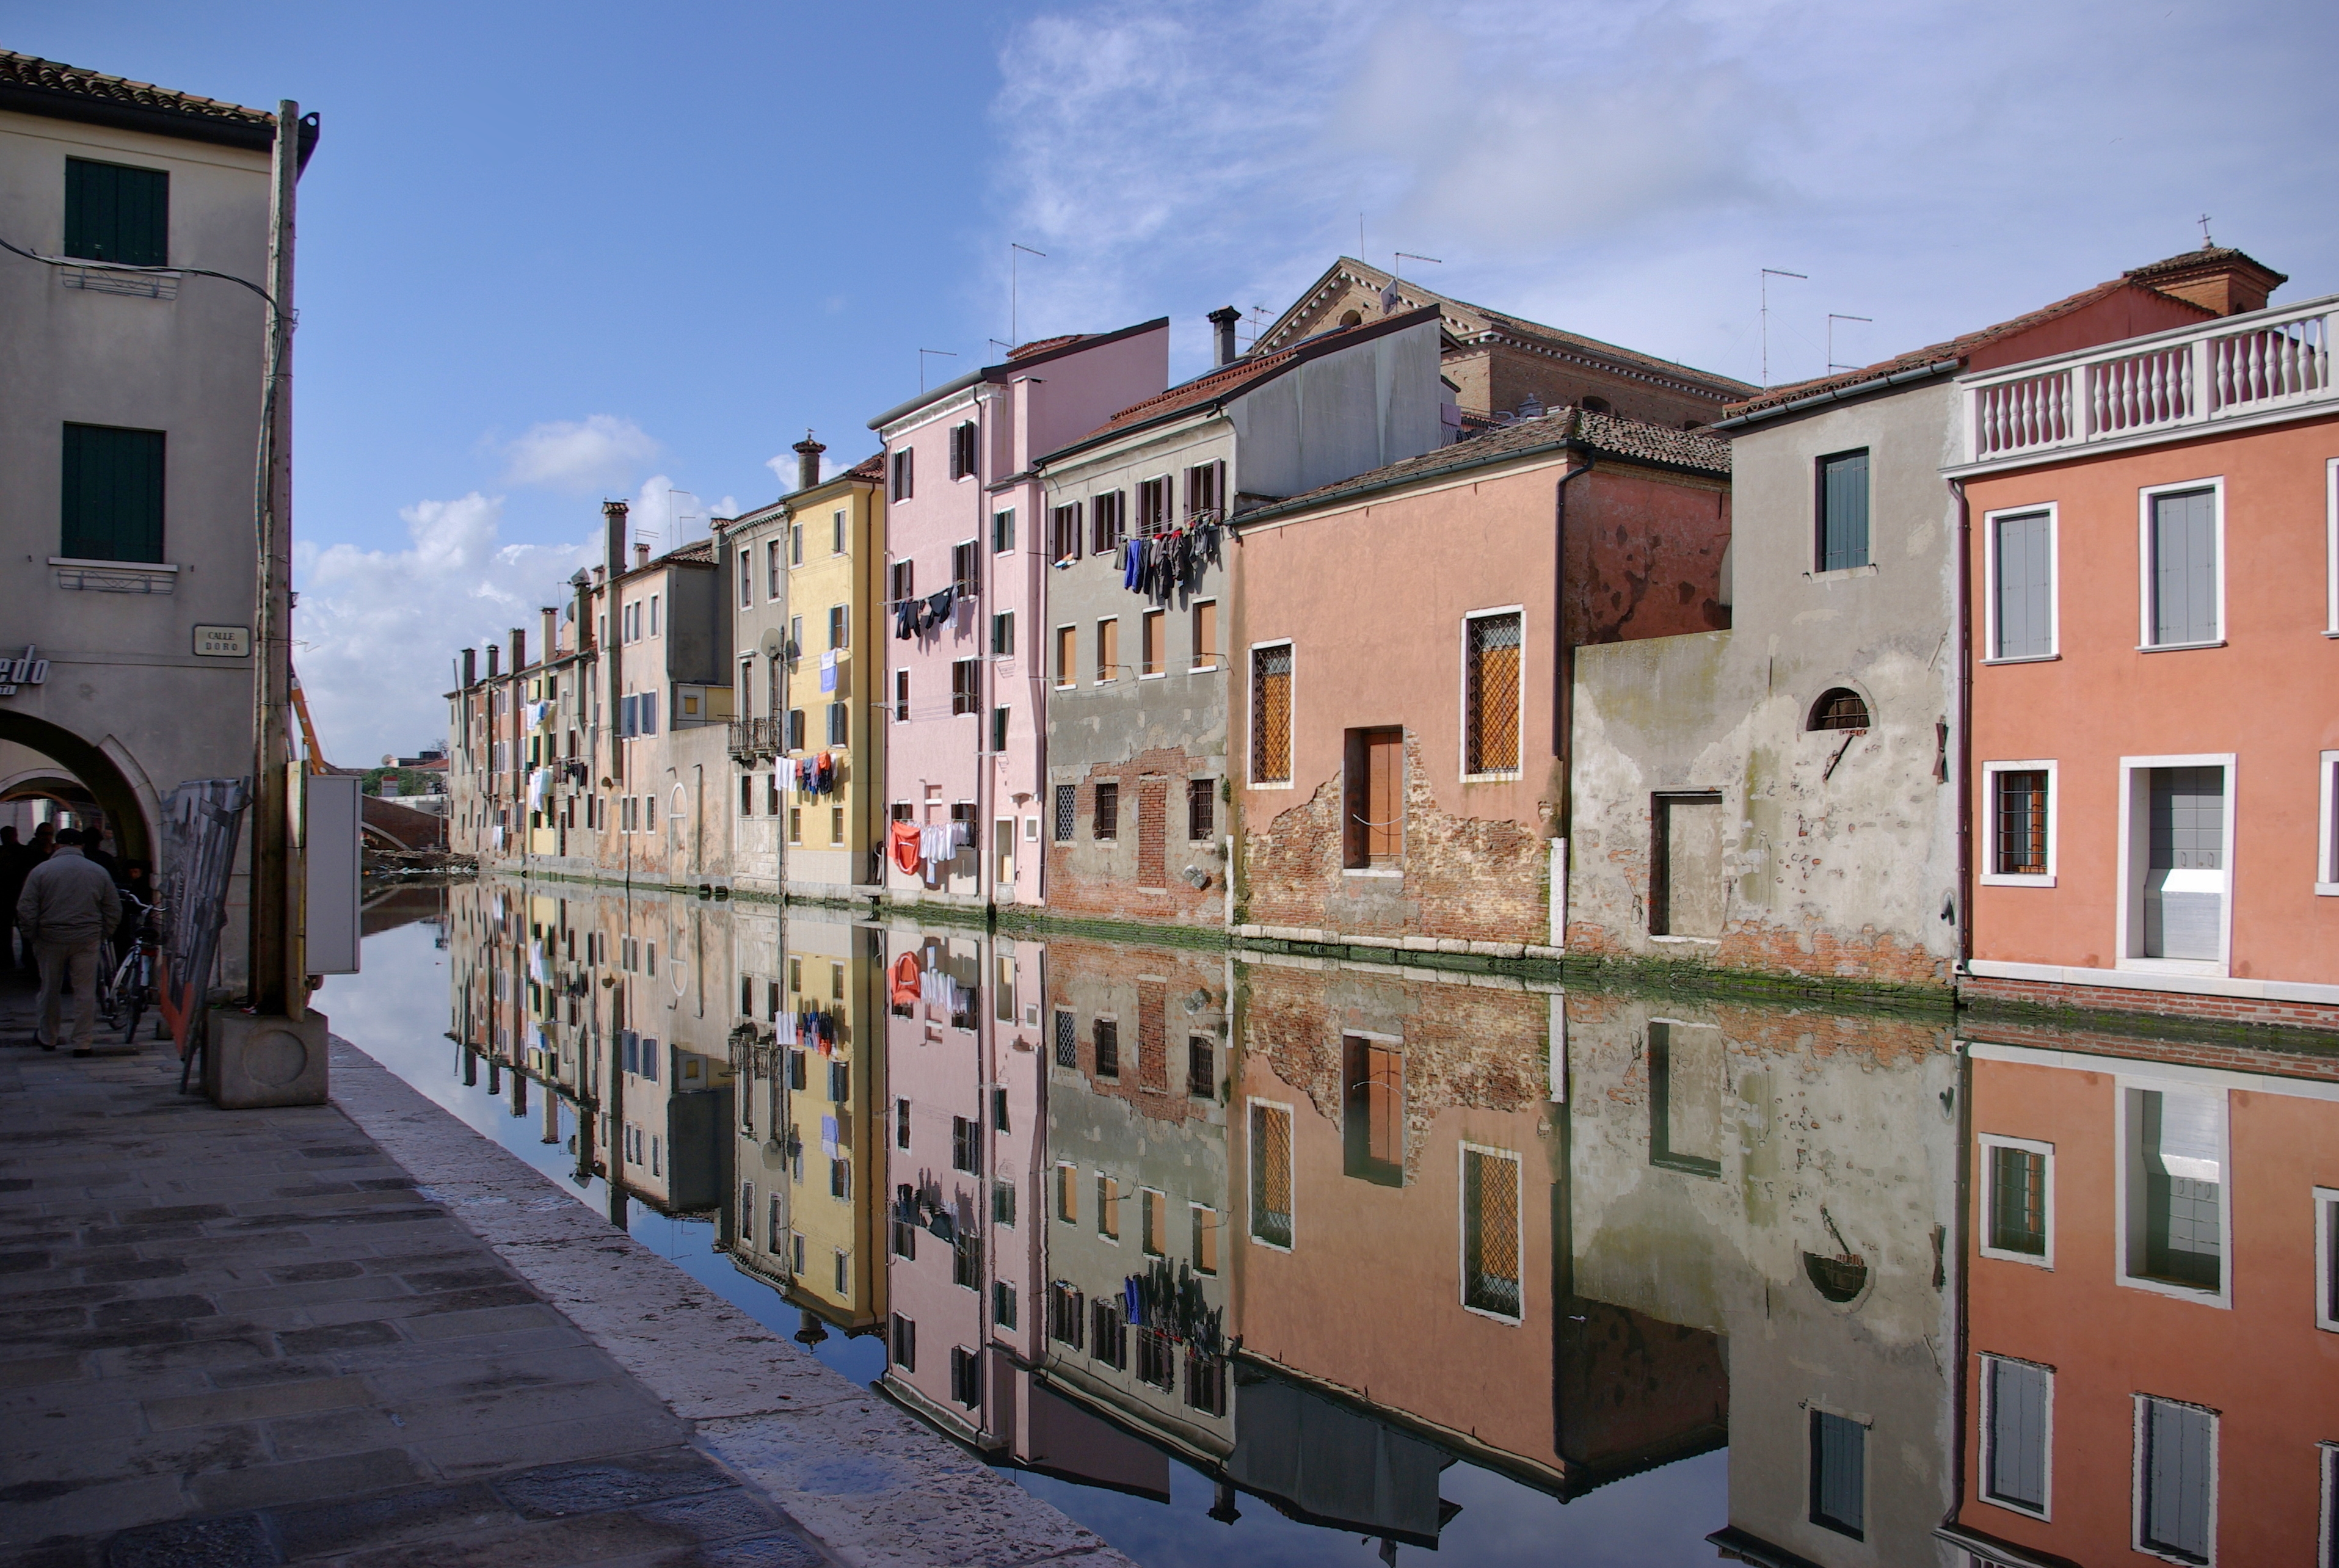 Free download high resolution image - free image free photo free stock image public domain picture -Chioggia Venice, typical houses along the canal with reflections